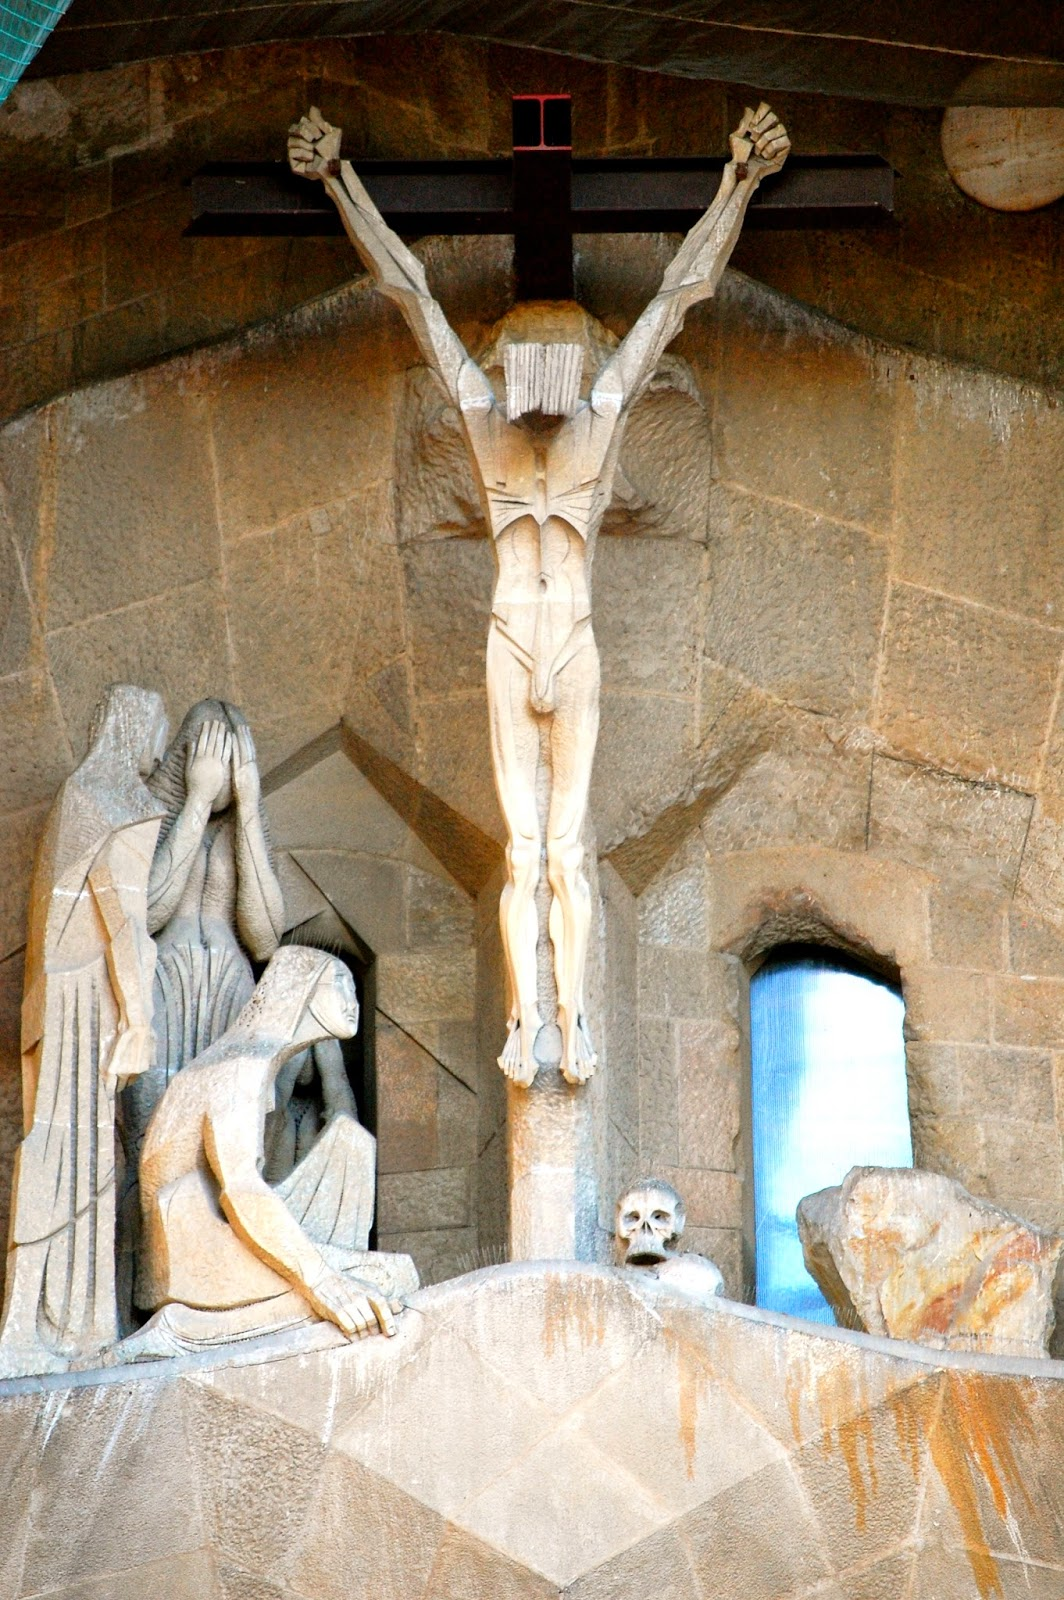 Carving of crucifixion and death of Jesus, Passion Facade, Sagrada Família